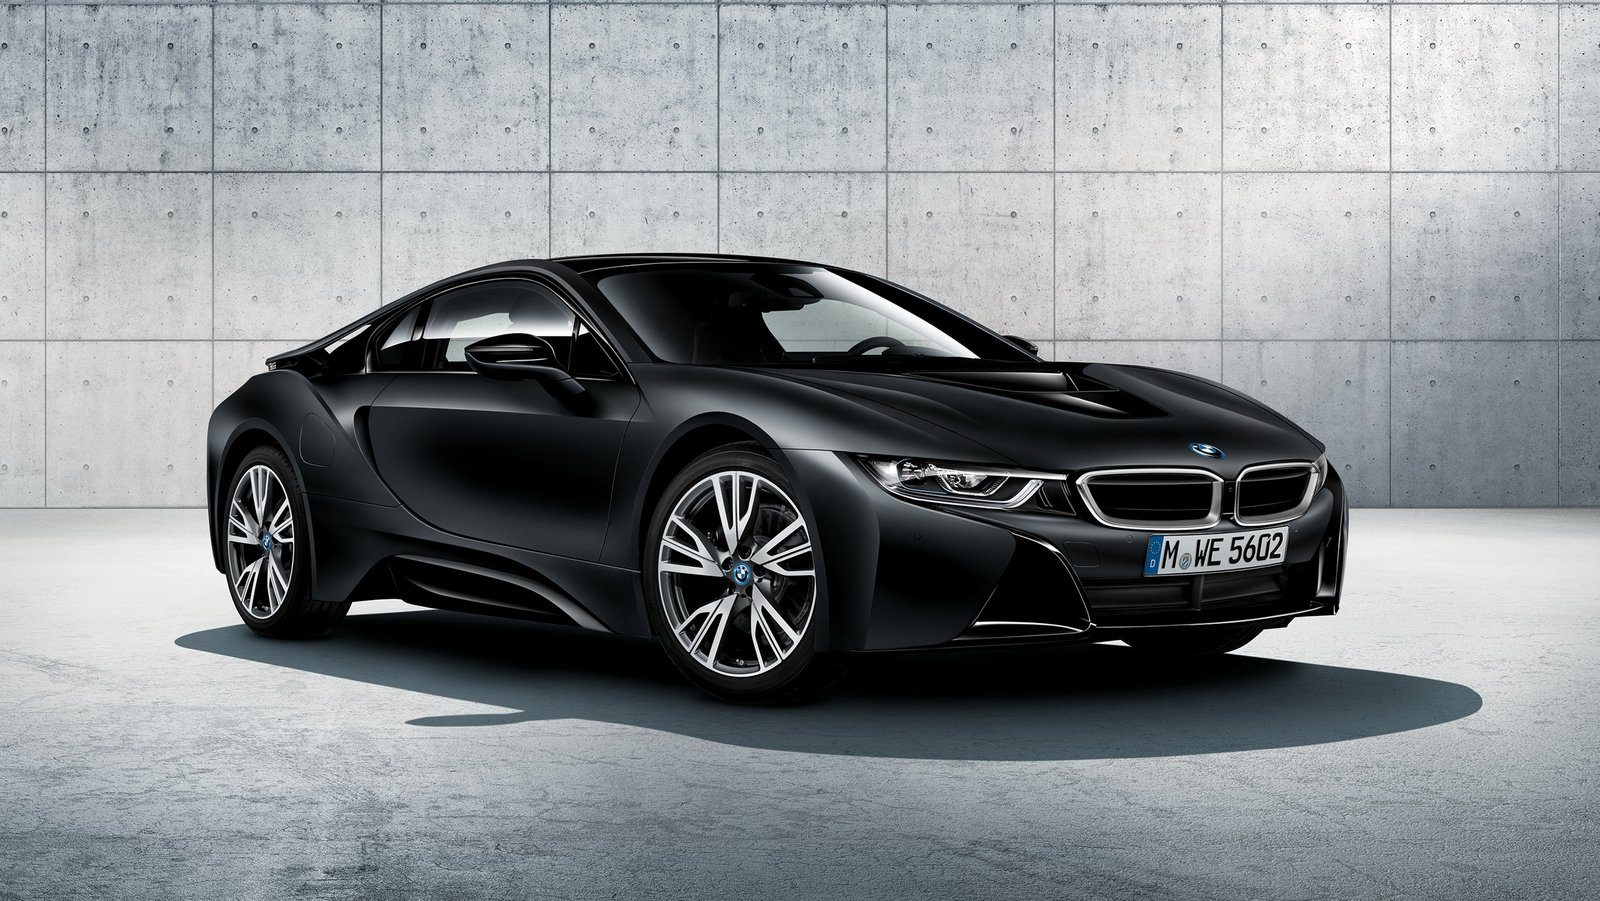 2017 bmw i8 protonic frozen black edition picture 704248. Black Bedroom Furniture Sets. Home Design Ideas